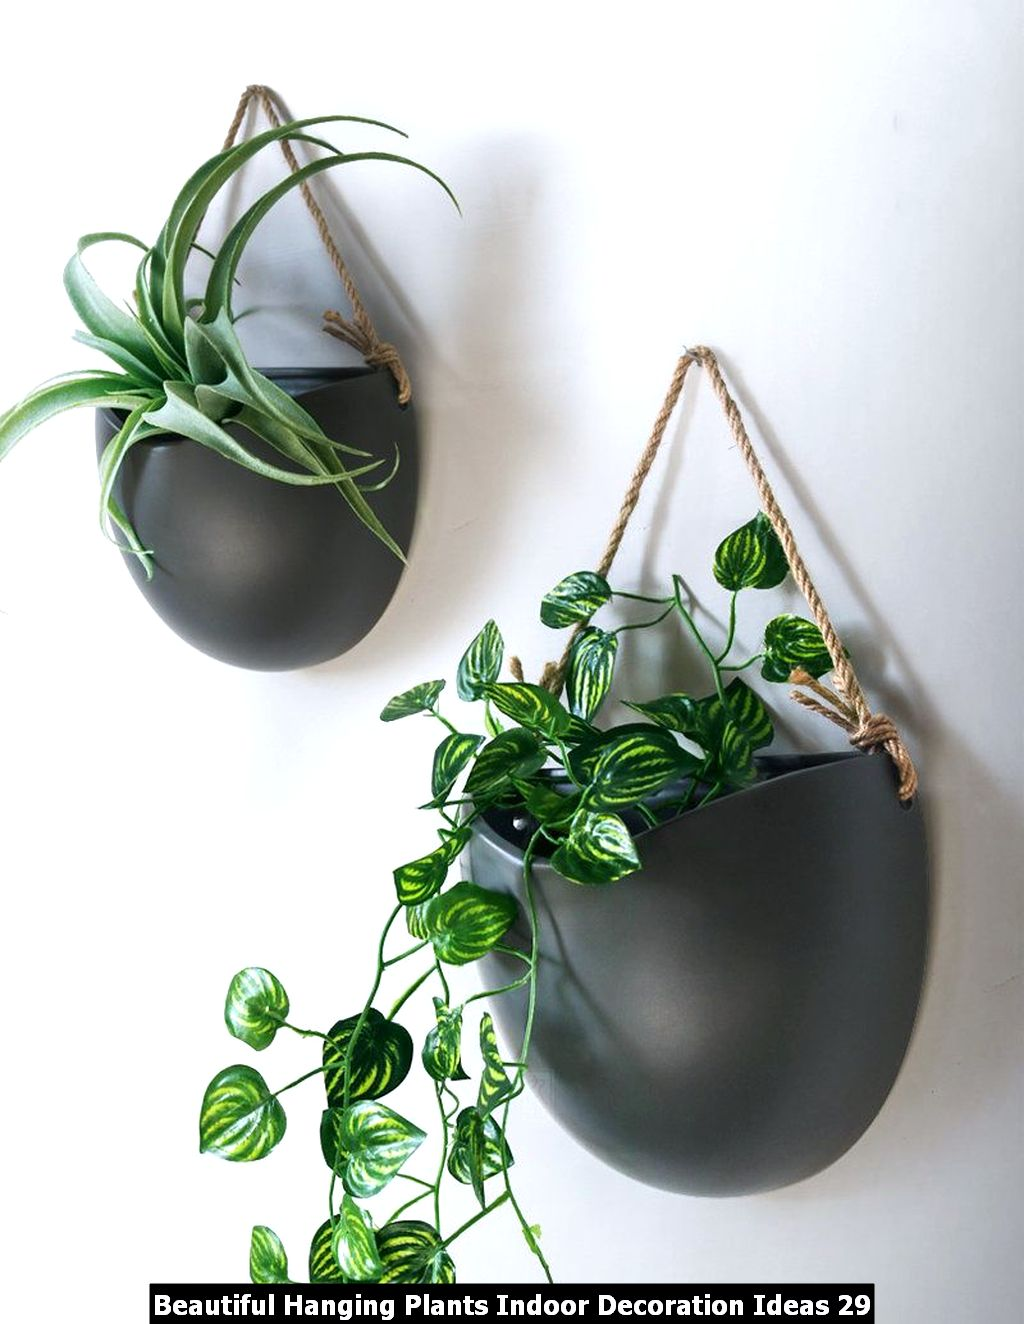 Beautiful Hanging Plants Indoor Decoration Ideas 29